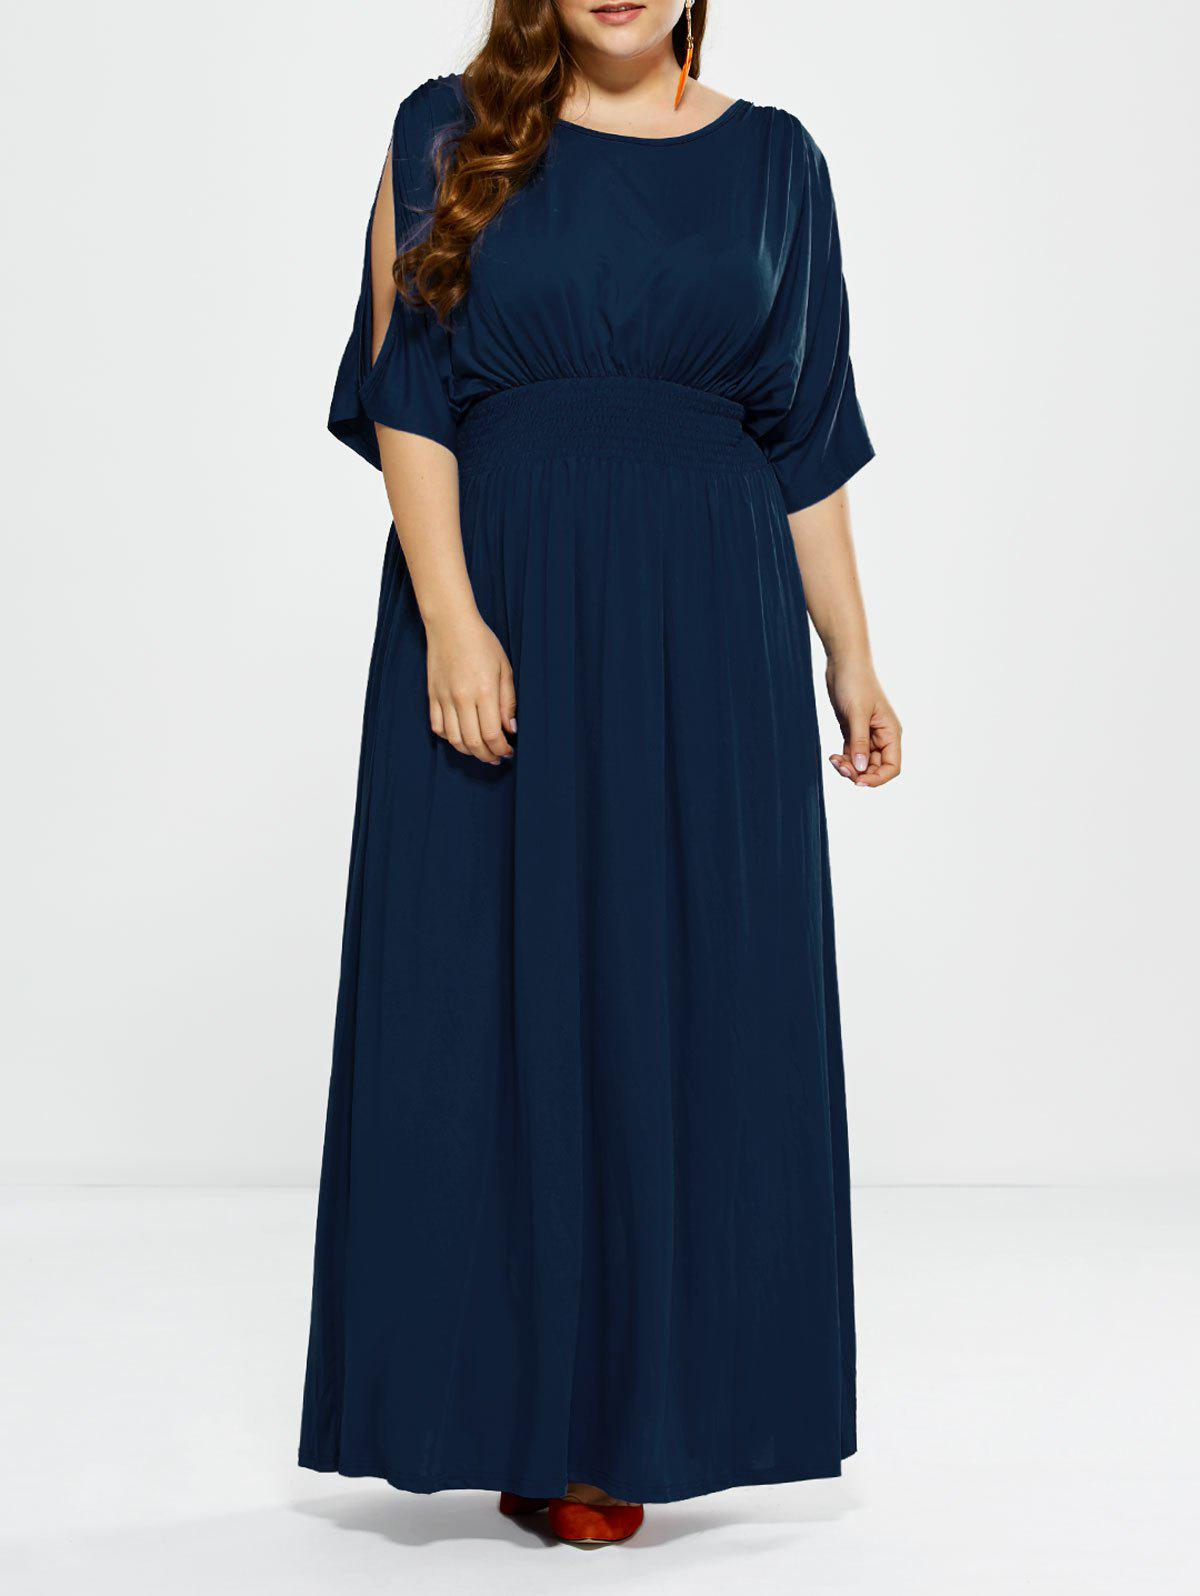 Plus Size Long Cold Shoulder Maxi Prom DressWOMEN<br><br>Size: 2XL; Color: DEEP BLUE; Style: Casual; Material: Polyester; Silhouette: A-Line; Dresses Length: Floor-Length; Neckline: Round Collar; Sleeve Length: 3/4 Length Sleeves; Pattern Type: Solid; With Belt: No; Season: Fall,Spring; Weight: 0.523kg; Package Contents: 1 x Dress;